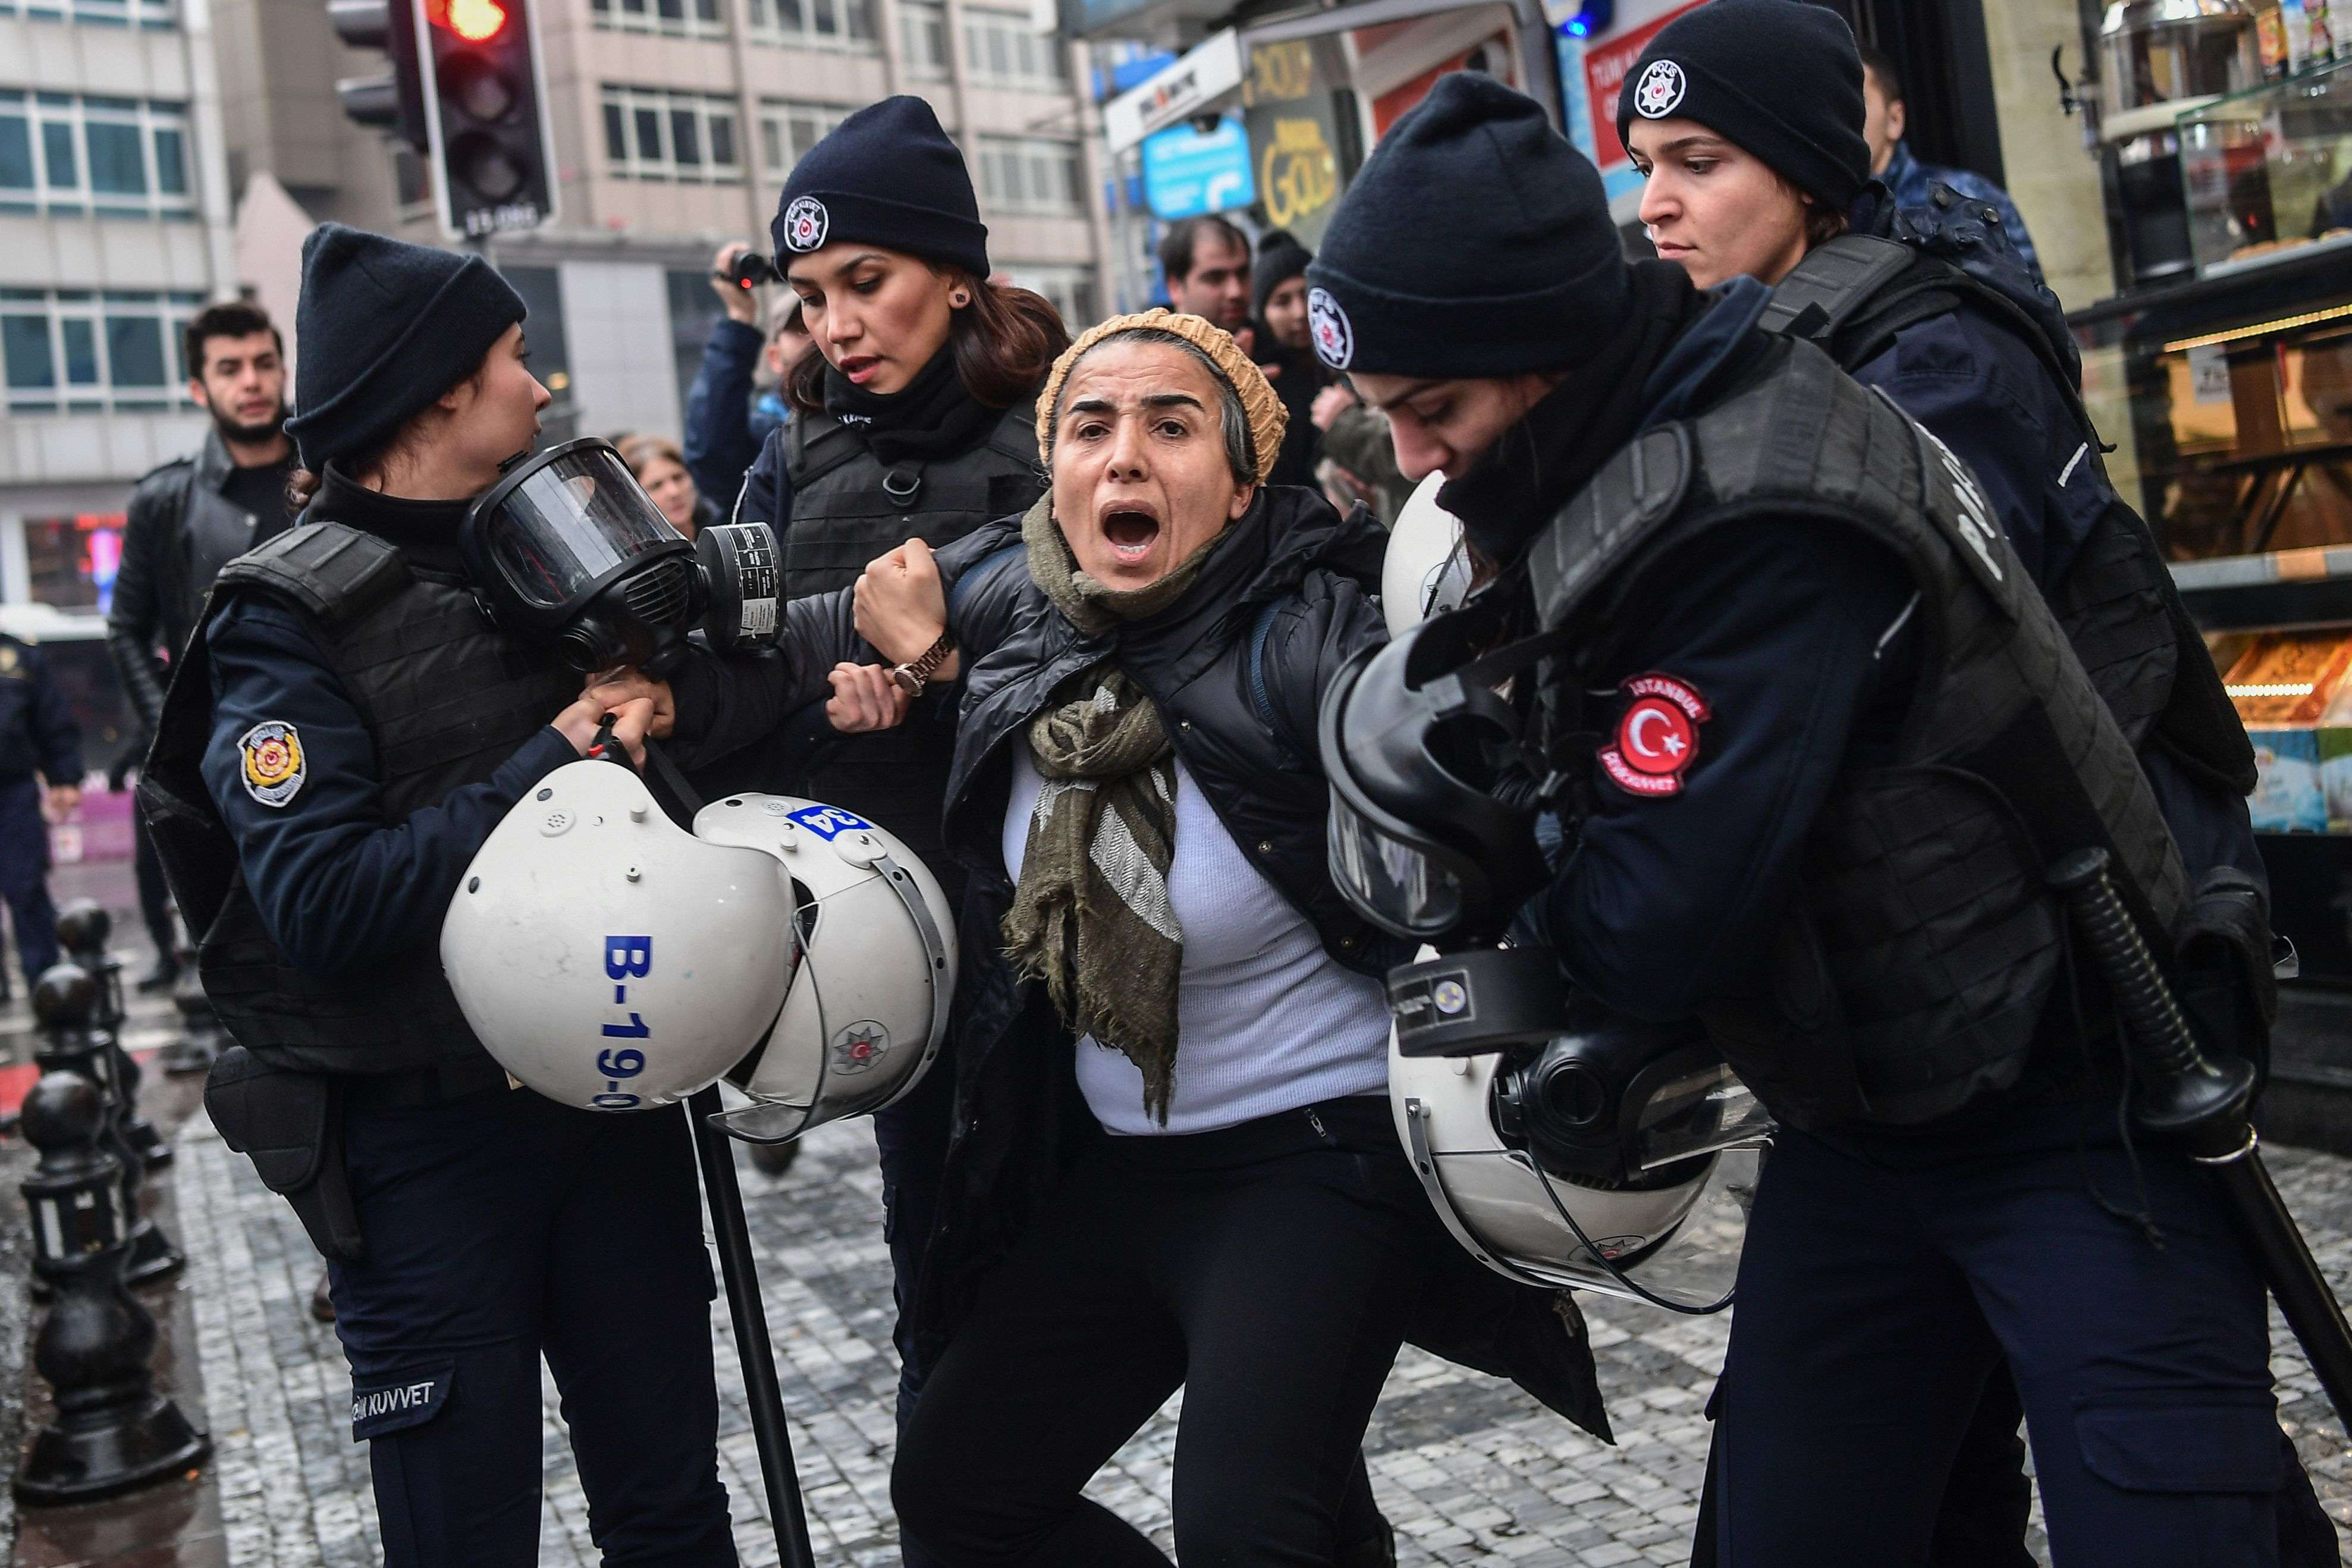 A woman reacts as Turkish anti-riot police officers arrest her during a demonstration in Istanbul called by the Peoples' Democratic Party to protest against Turkey's Operation Olive Branch in Syria, on January 21. (AFP)